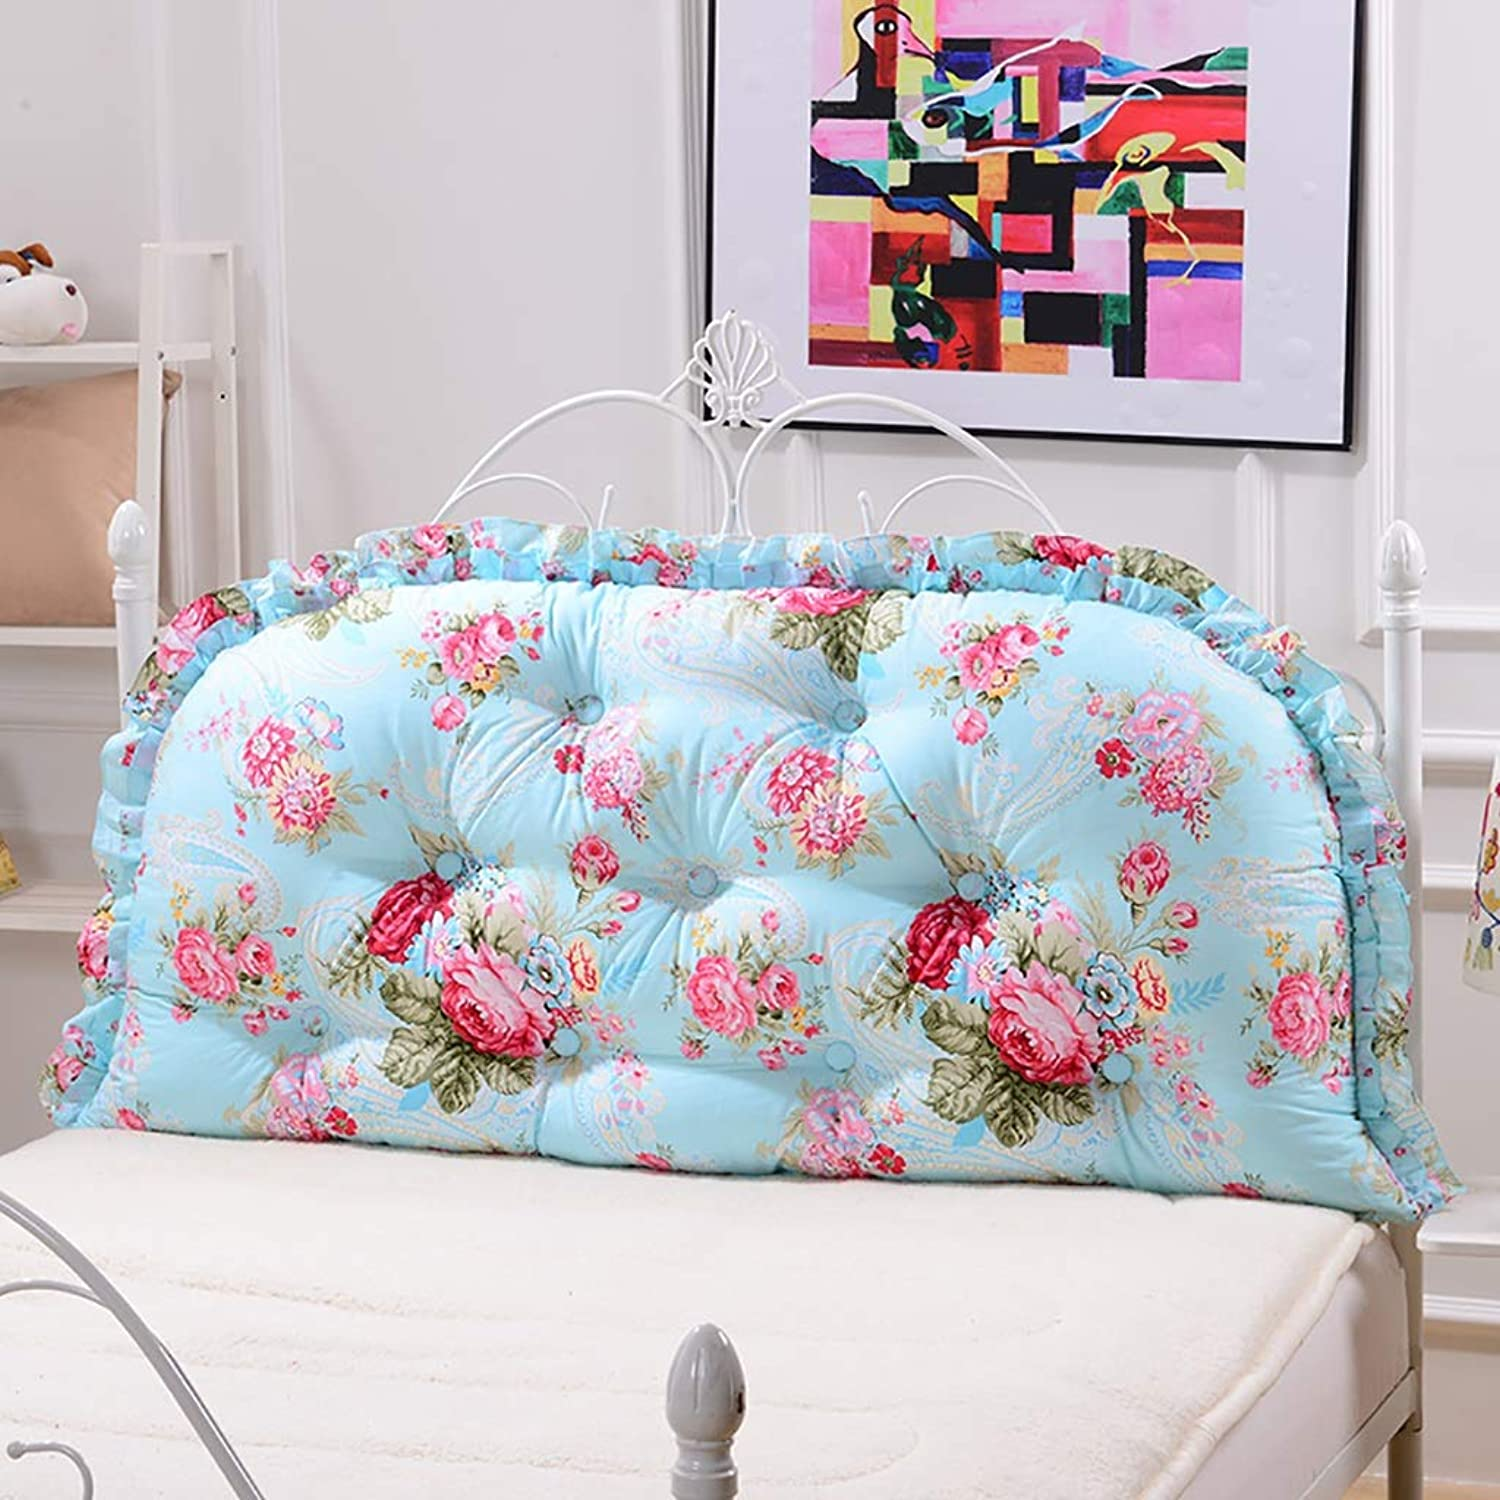 Headboard Bed Backrest Cushion Bed Cushion Bedside Pillow Cotton Soft Large Pillow Lumbar Support Detachable and Washable 11 Solid colors 4 (color   A3, Size   120  65cm)